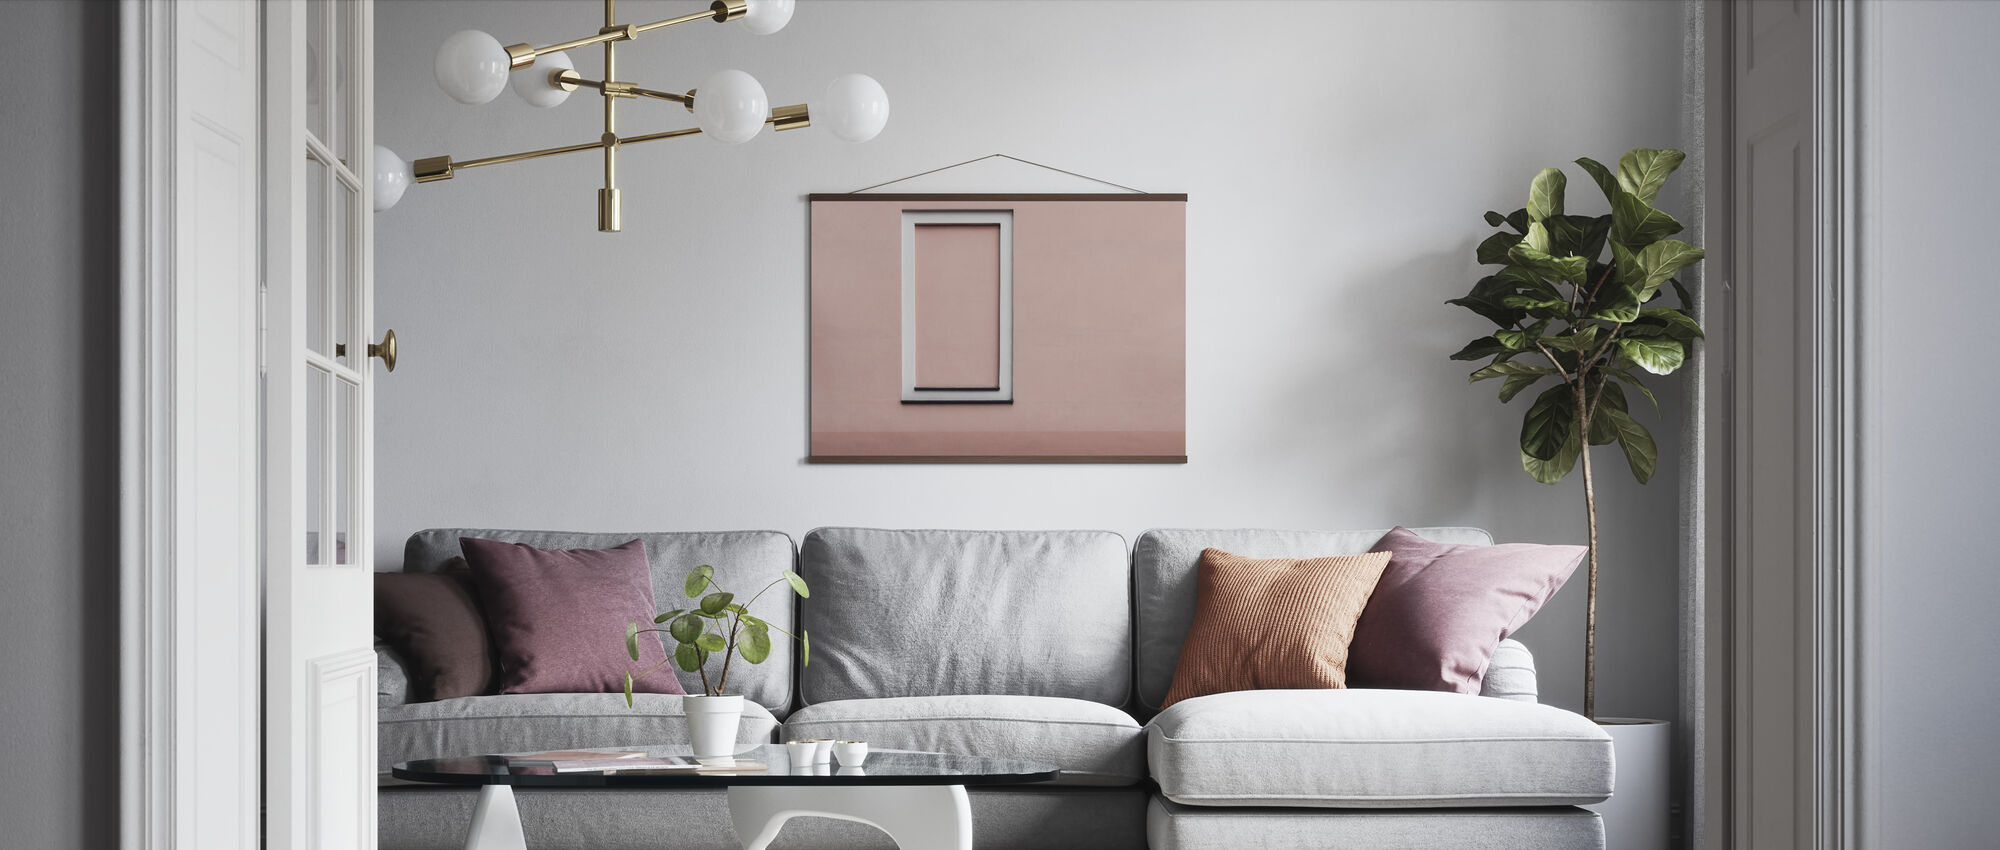 Simple Wall - Poster - Living Room